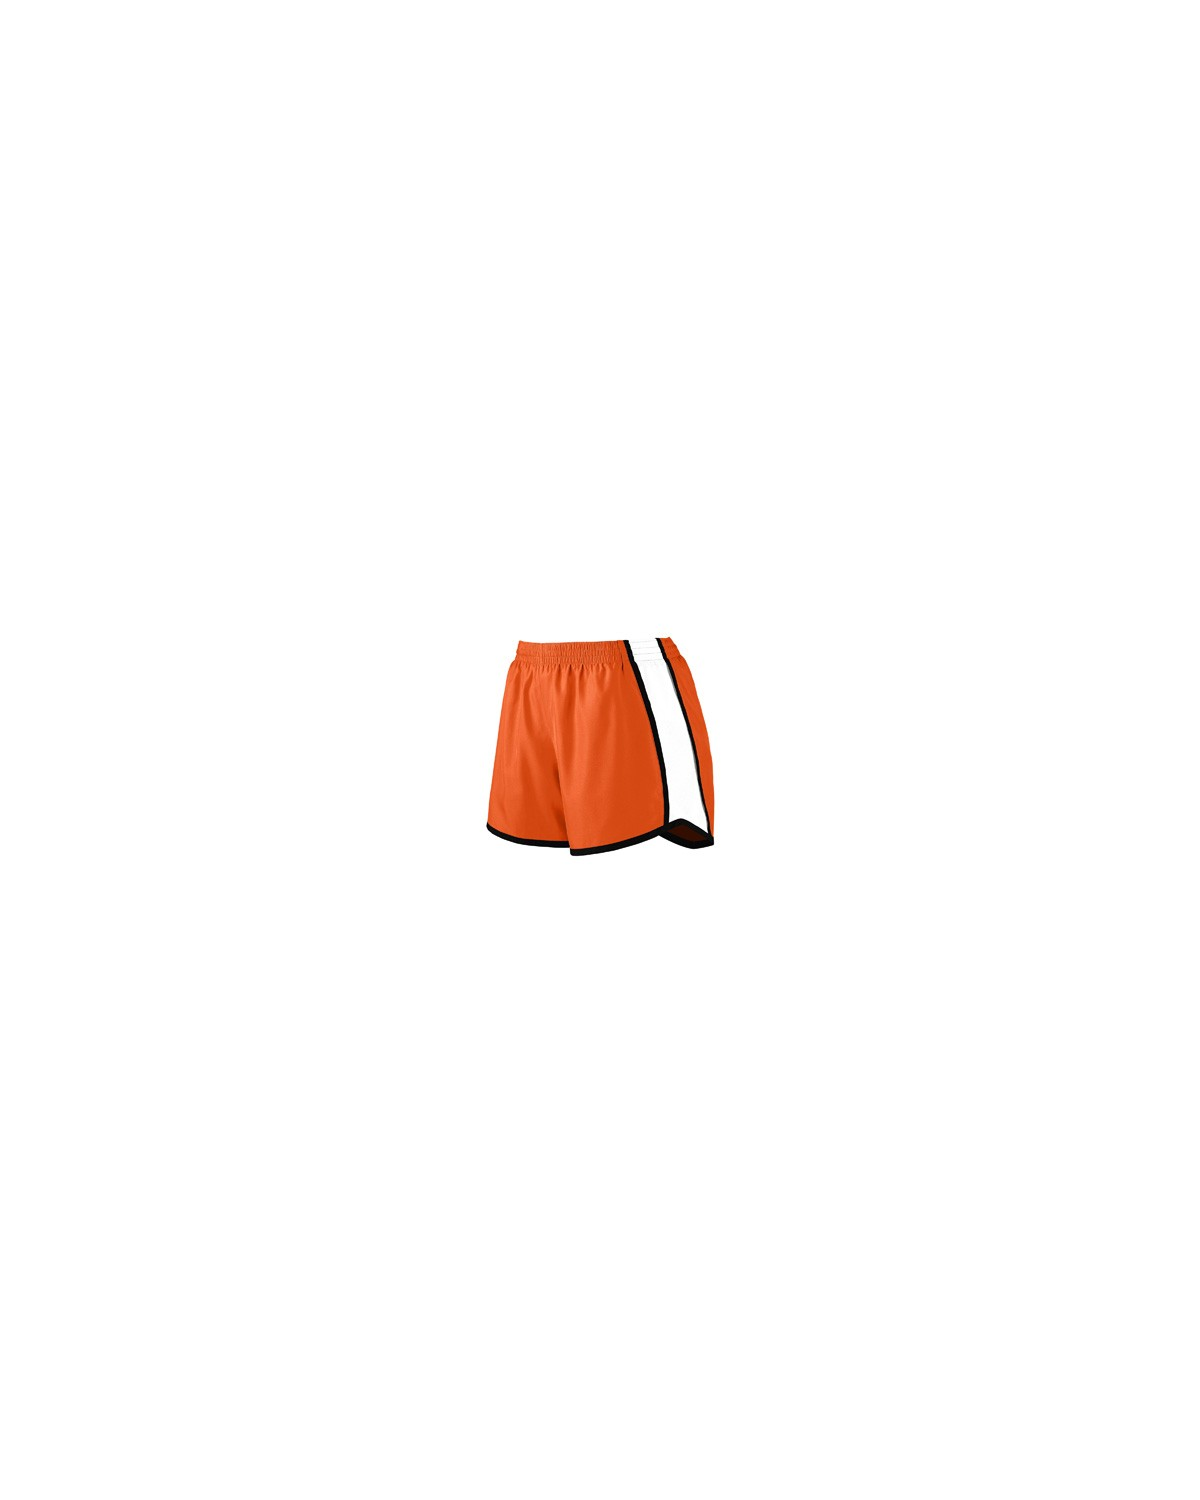 1266 Augusta Drop Ship ORANGE/WHT/BLK